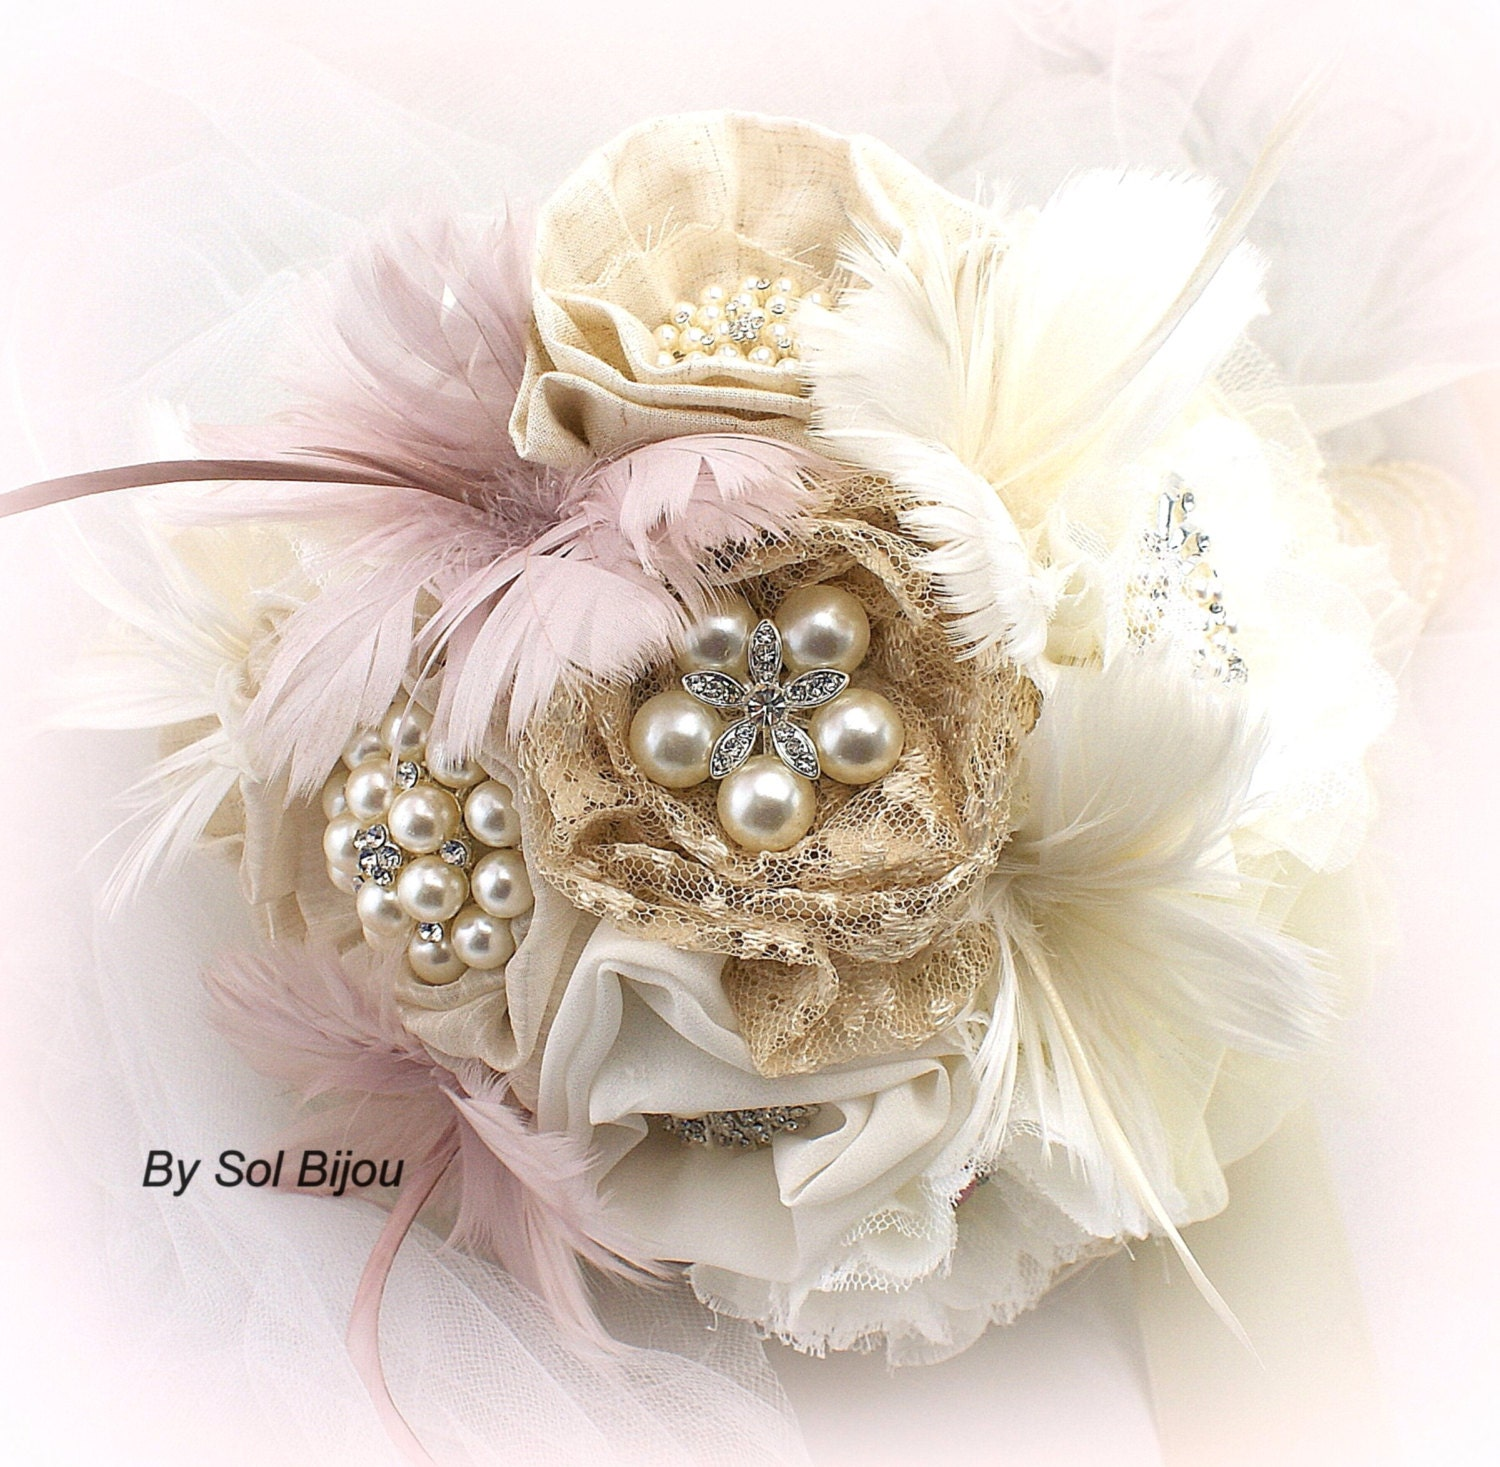 Wedding Accessories Ideas Brooch Bouquet Shabby Chic Rustic Bouquet In Ivory Champagne Tan Beige And Blush With Linen Lace Pearls Burlap And Feathers